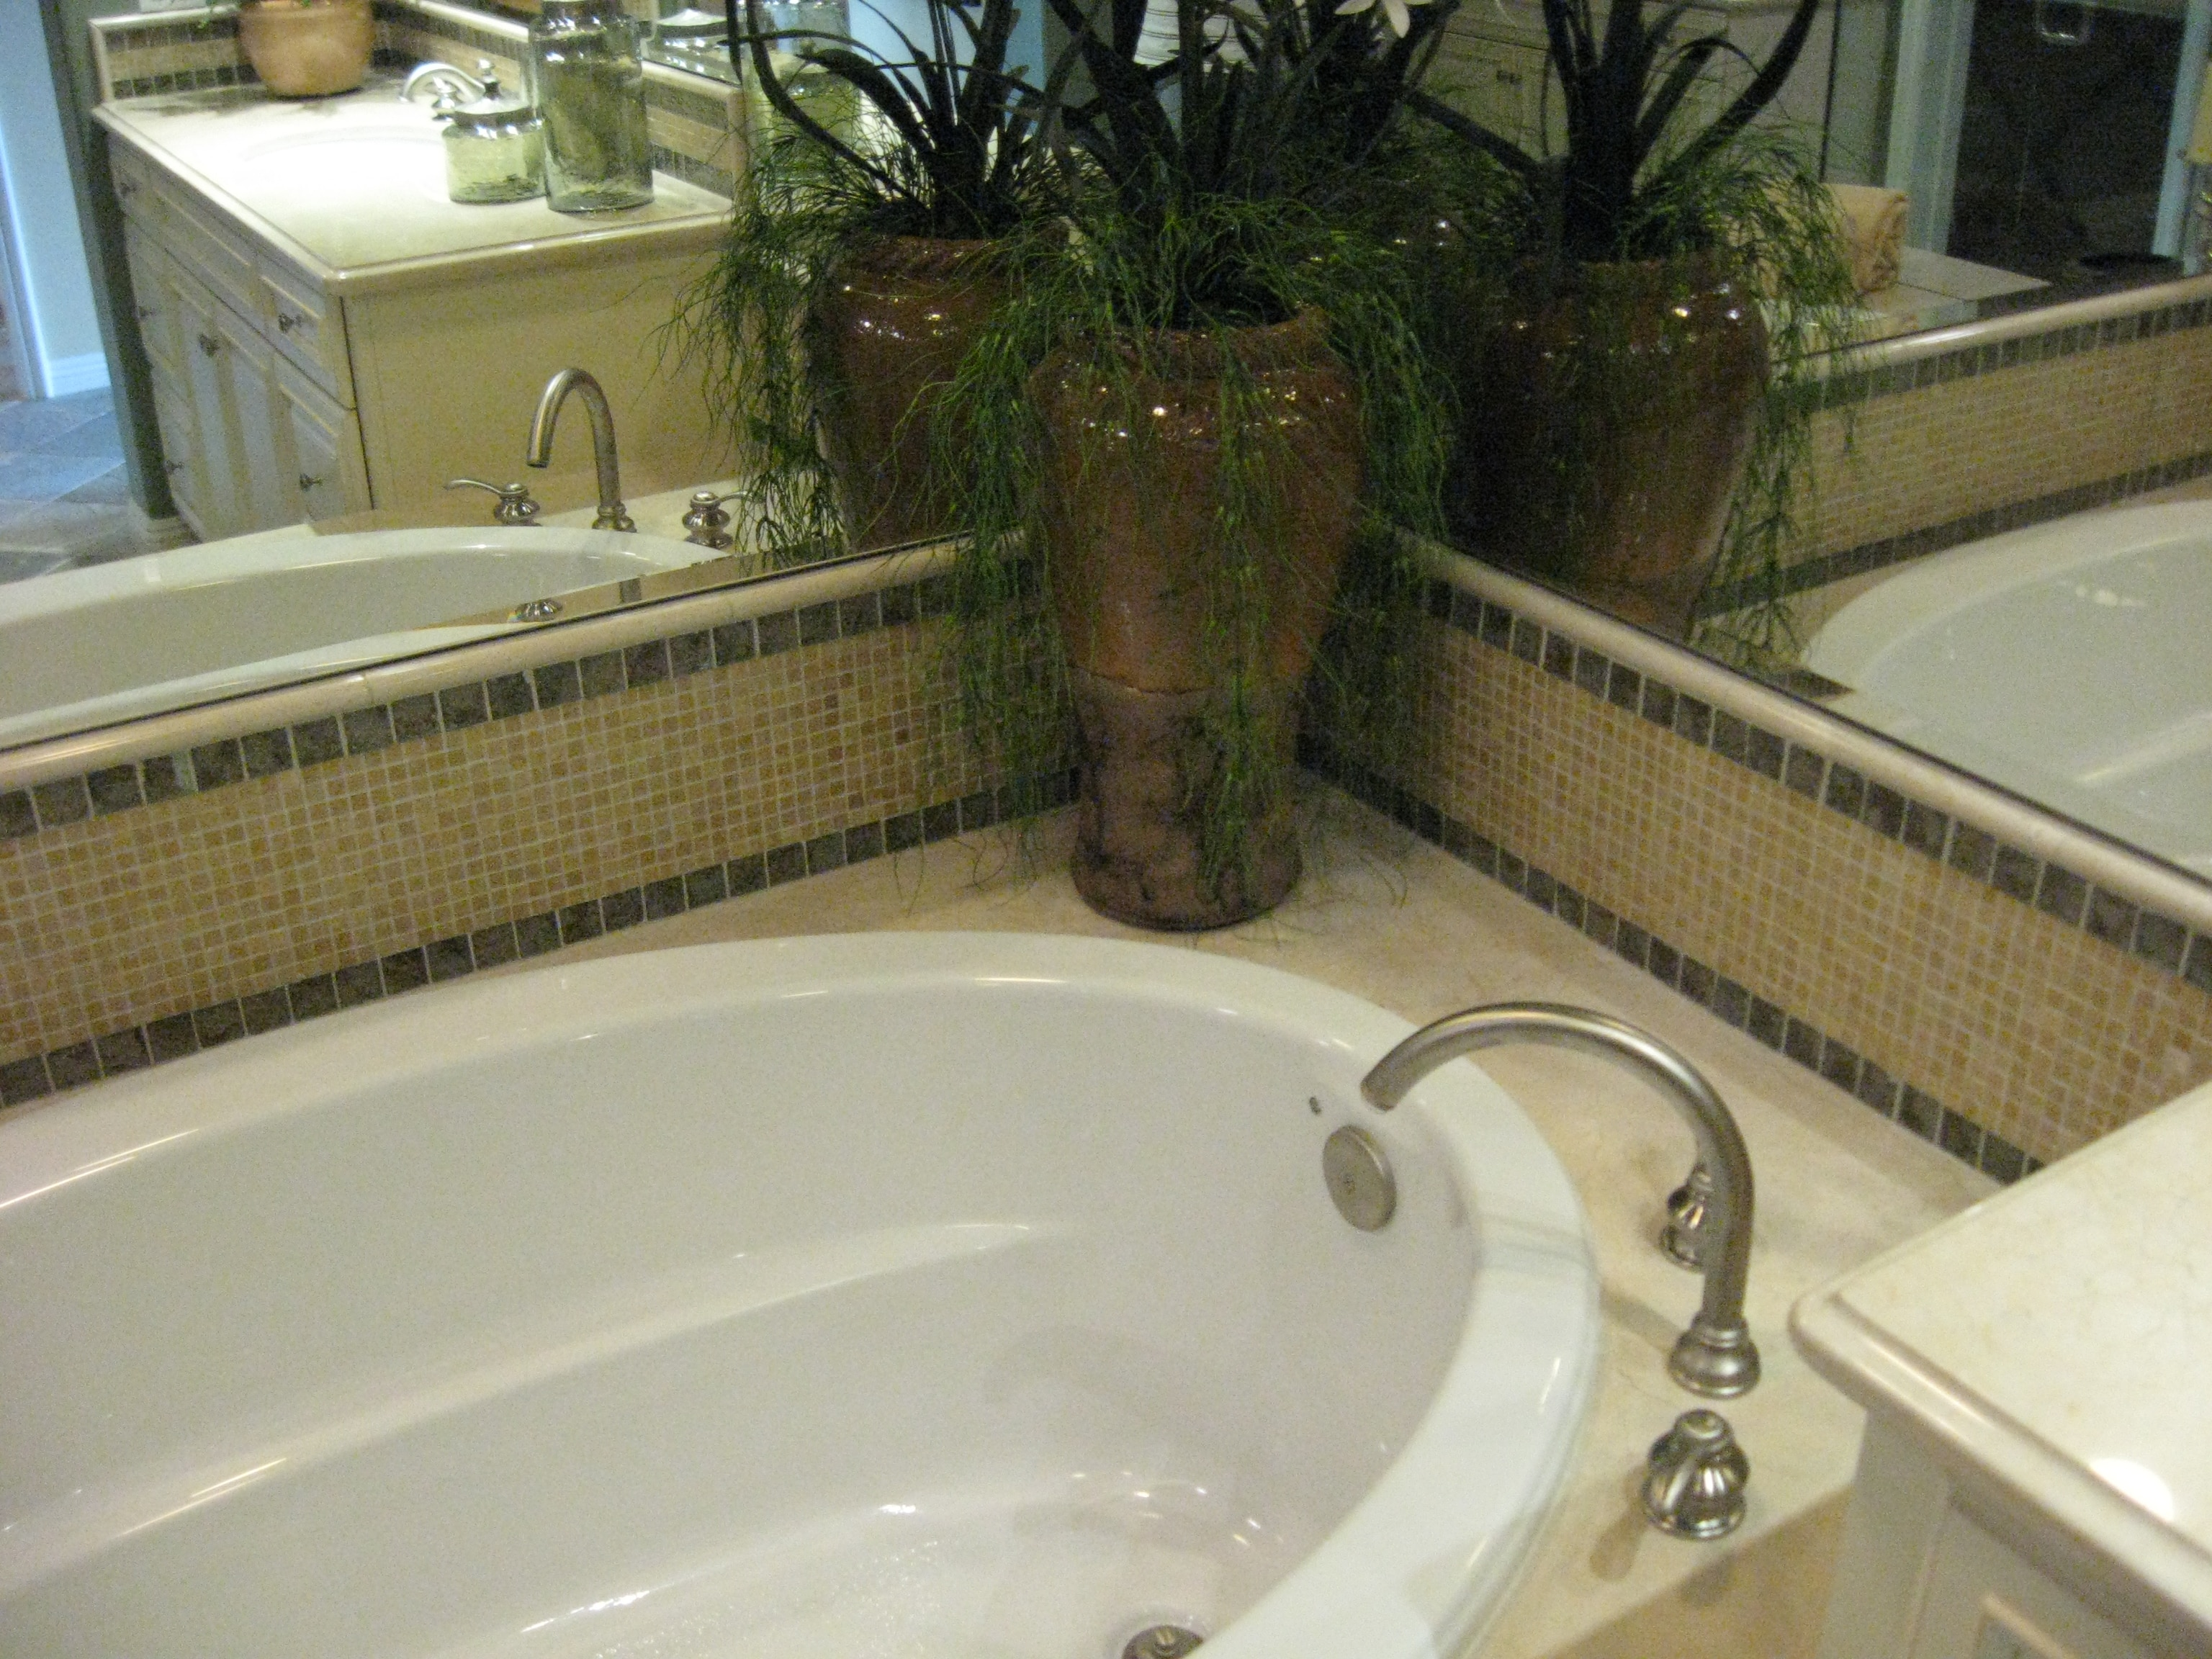 Lot 218 Plan B Master Tub III – Home Accents